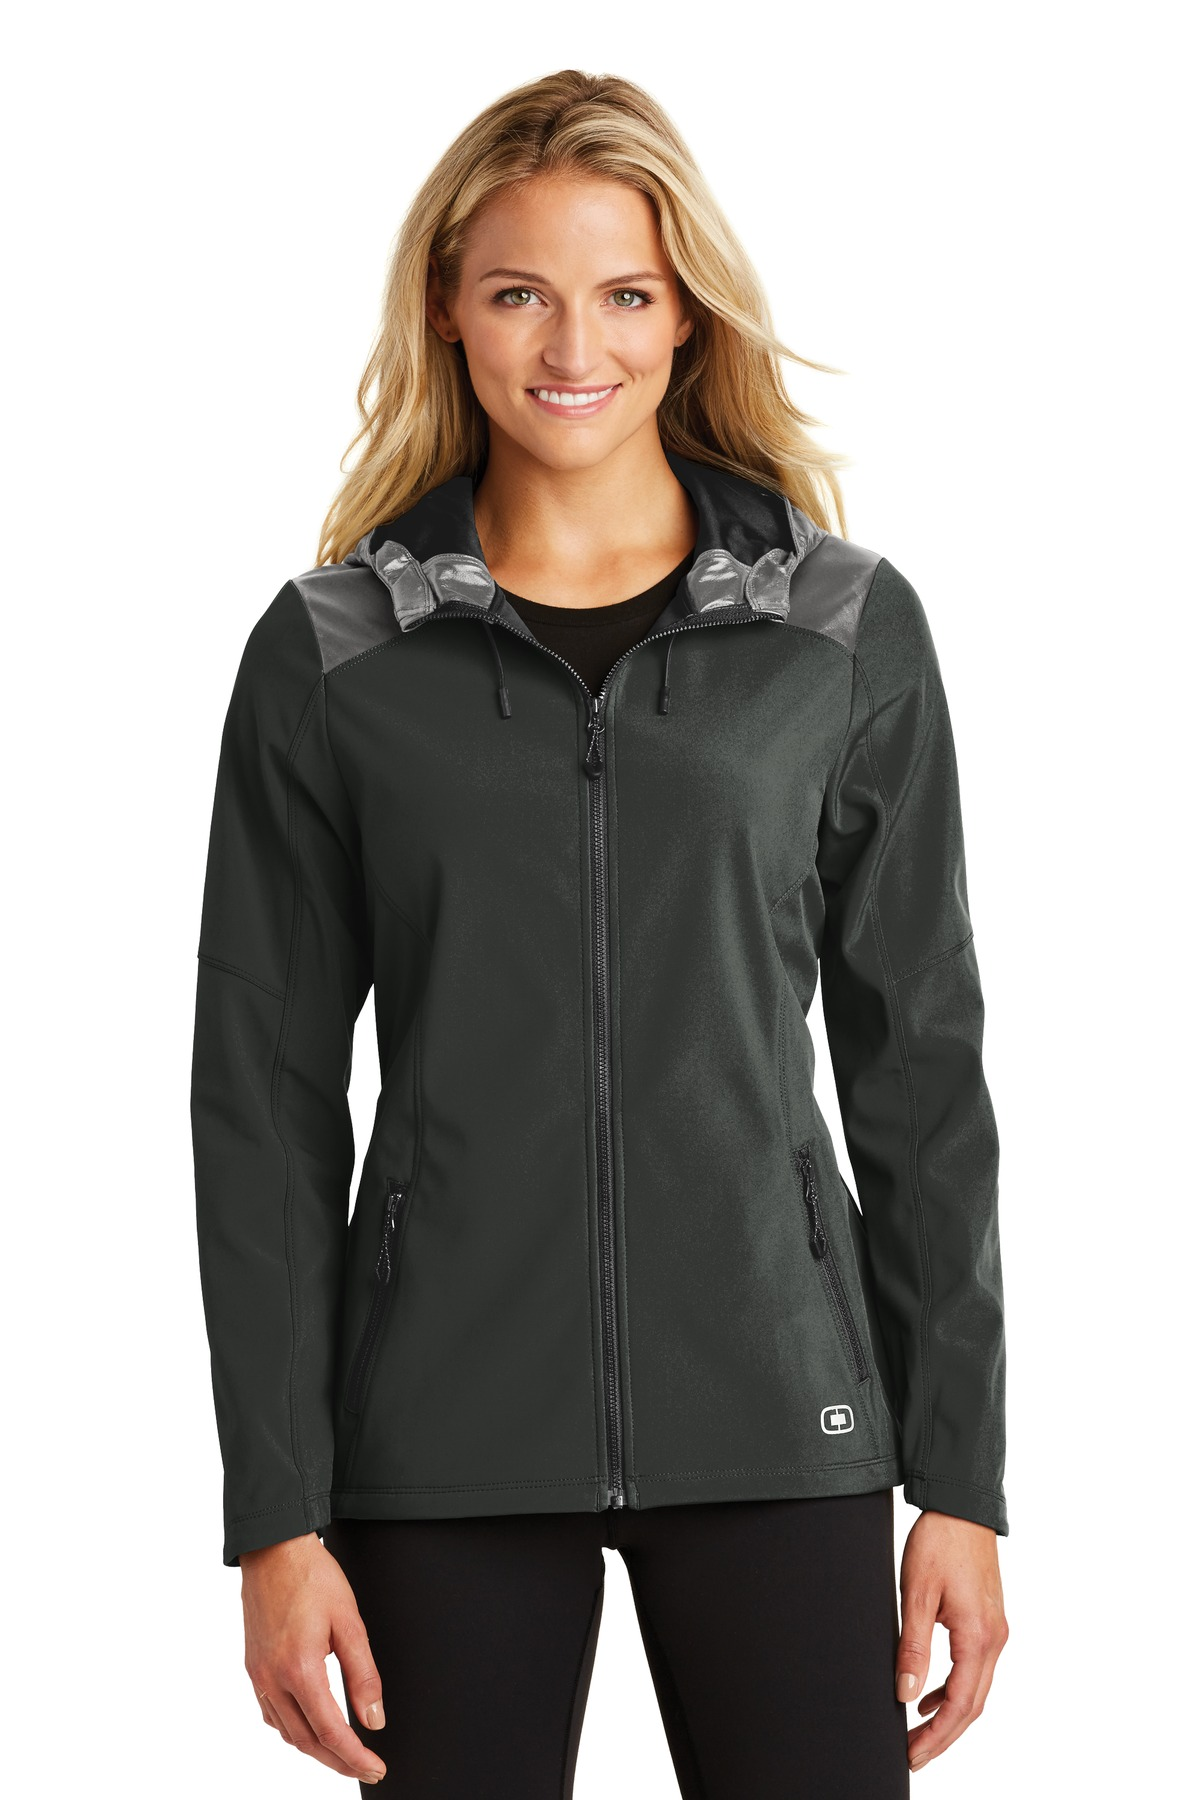 OGIO ®  ENDURANCE Ladies Liquid Jacket. LOE723 - Blacktop